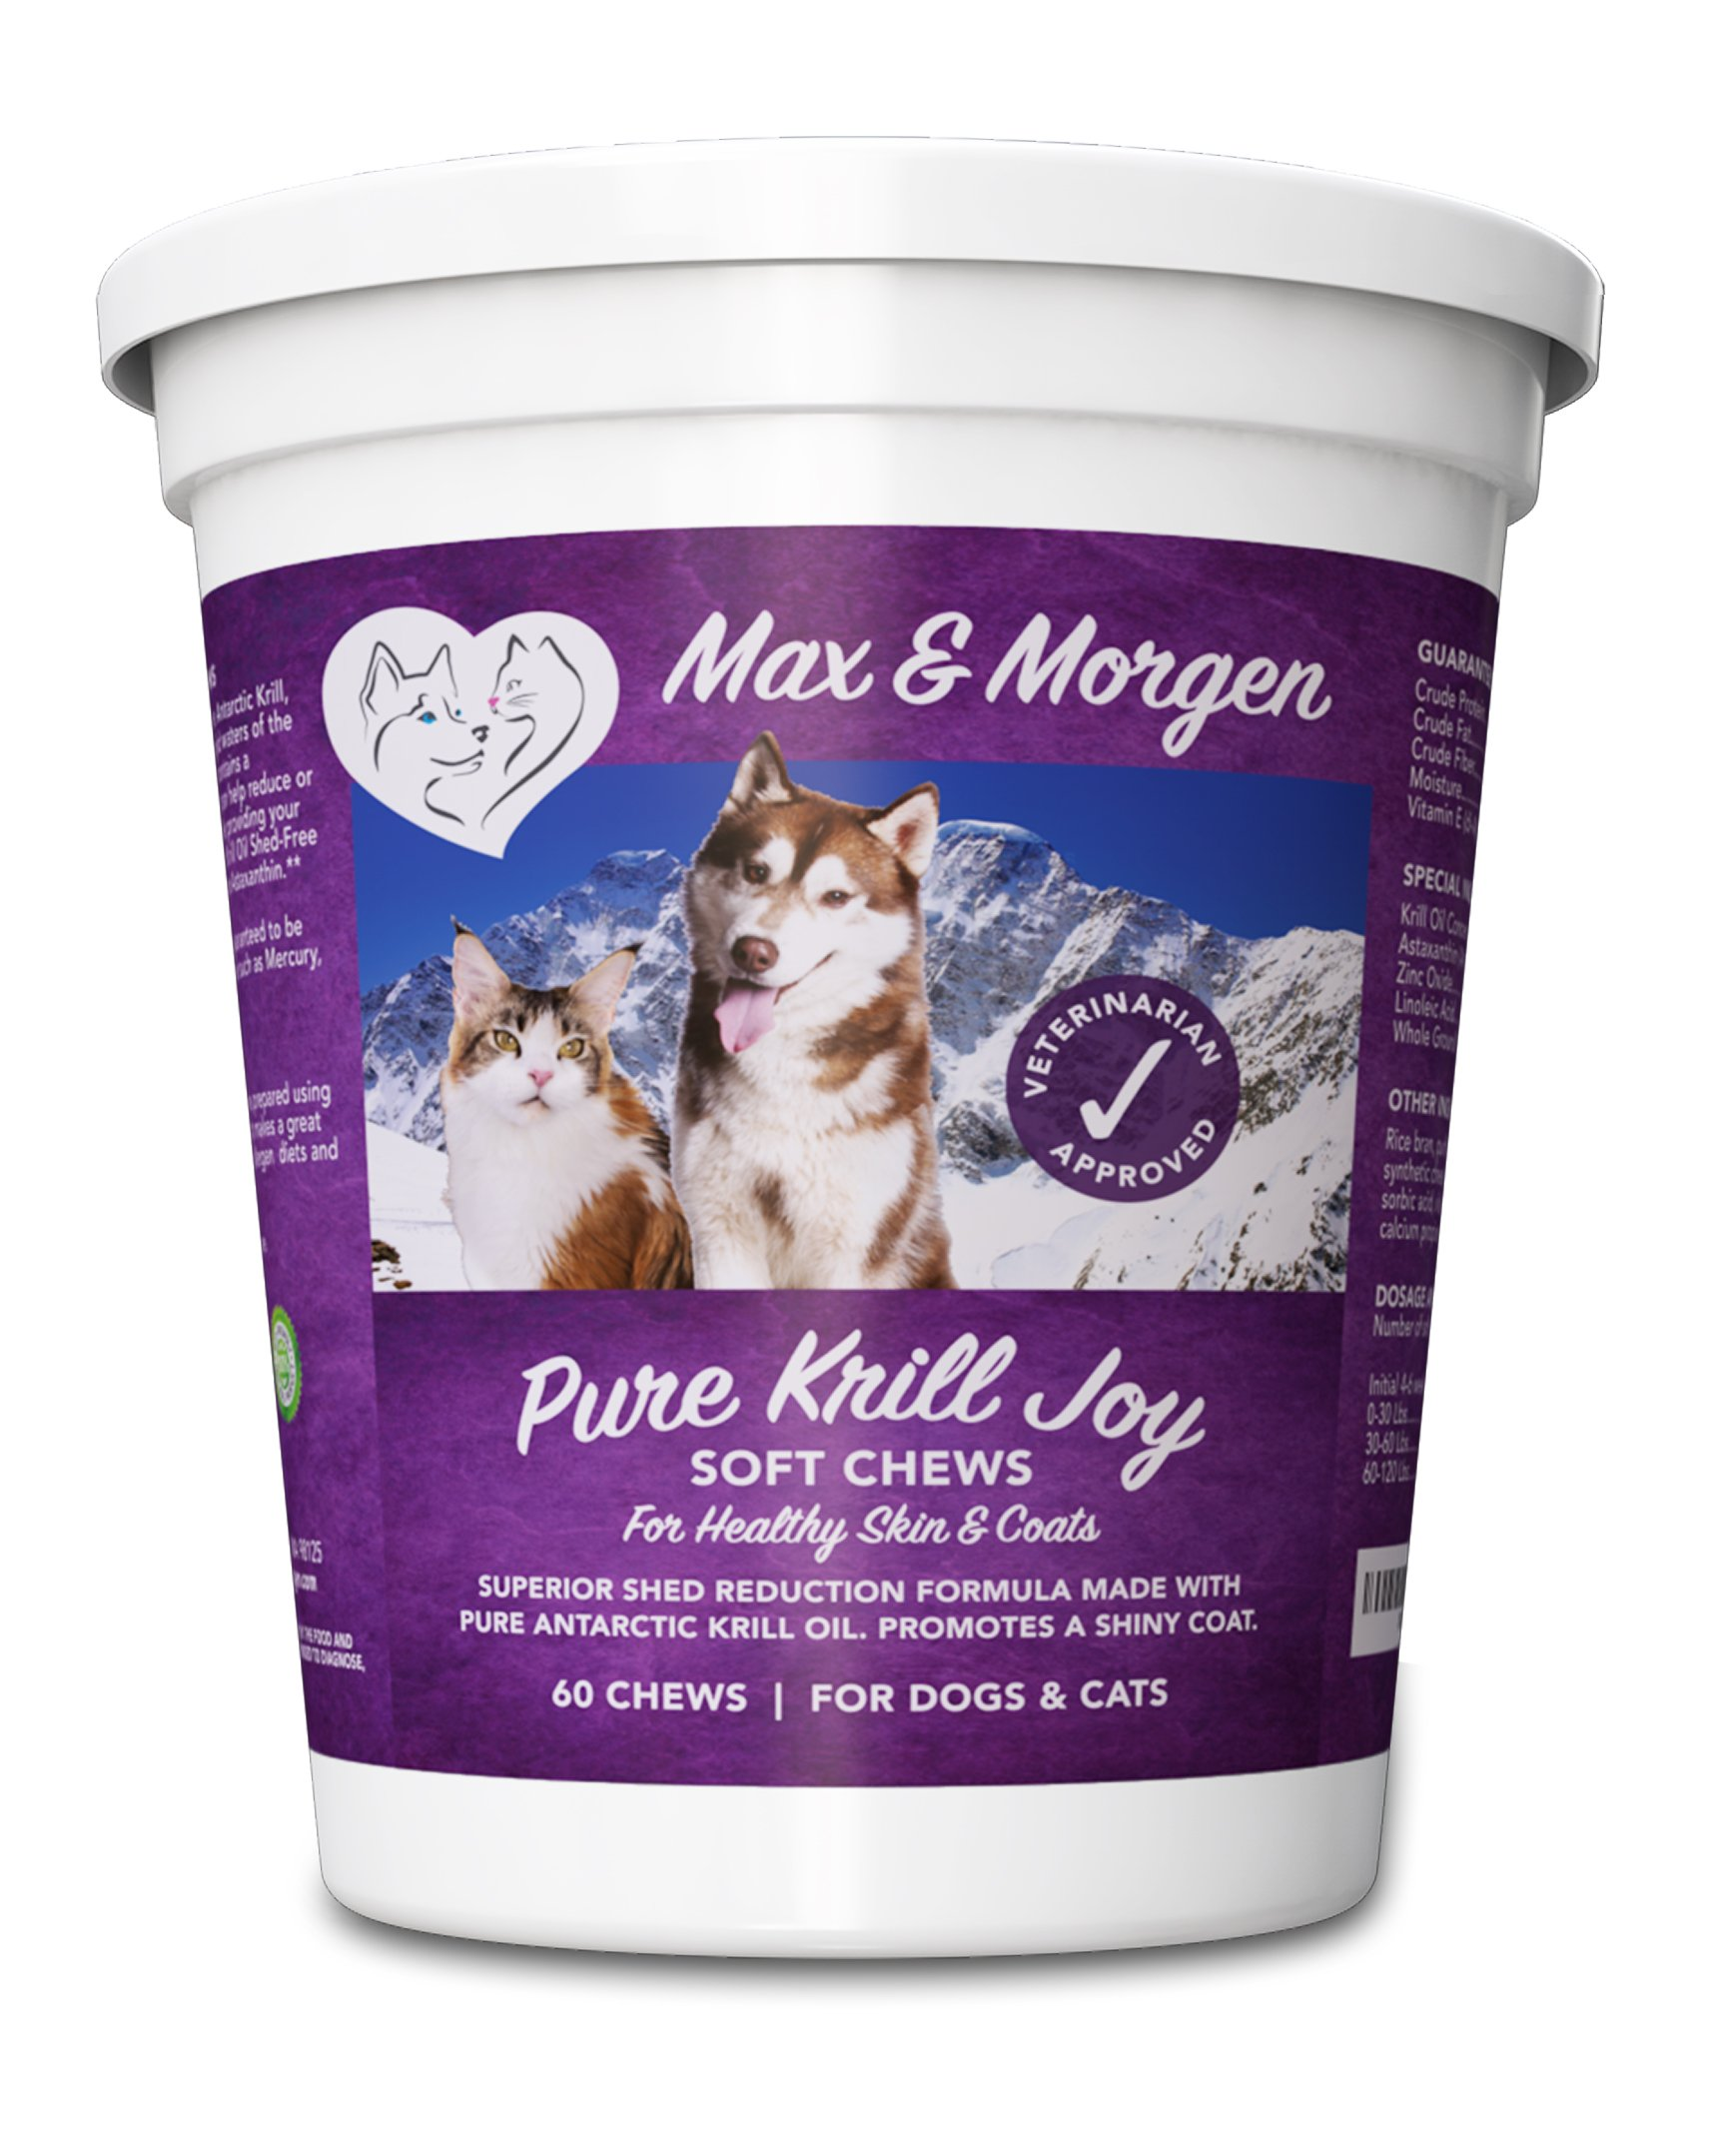 Pure Krill Joy, Antarctic Krill Oil Soft Chews For Dogs, Rich in Omega 3 and Antioxidants, Unique Shed Reducing Formula, Improves Skin and Coat, Low Allergen, Made In The USA, 60 Soft Chews. by Max and Morgen